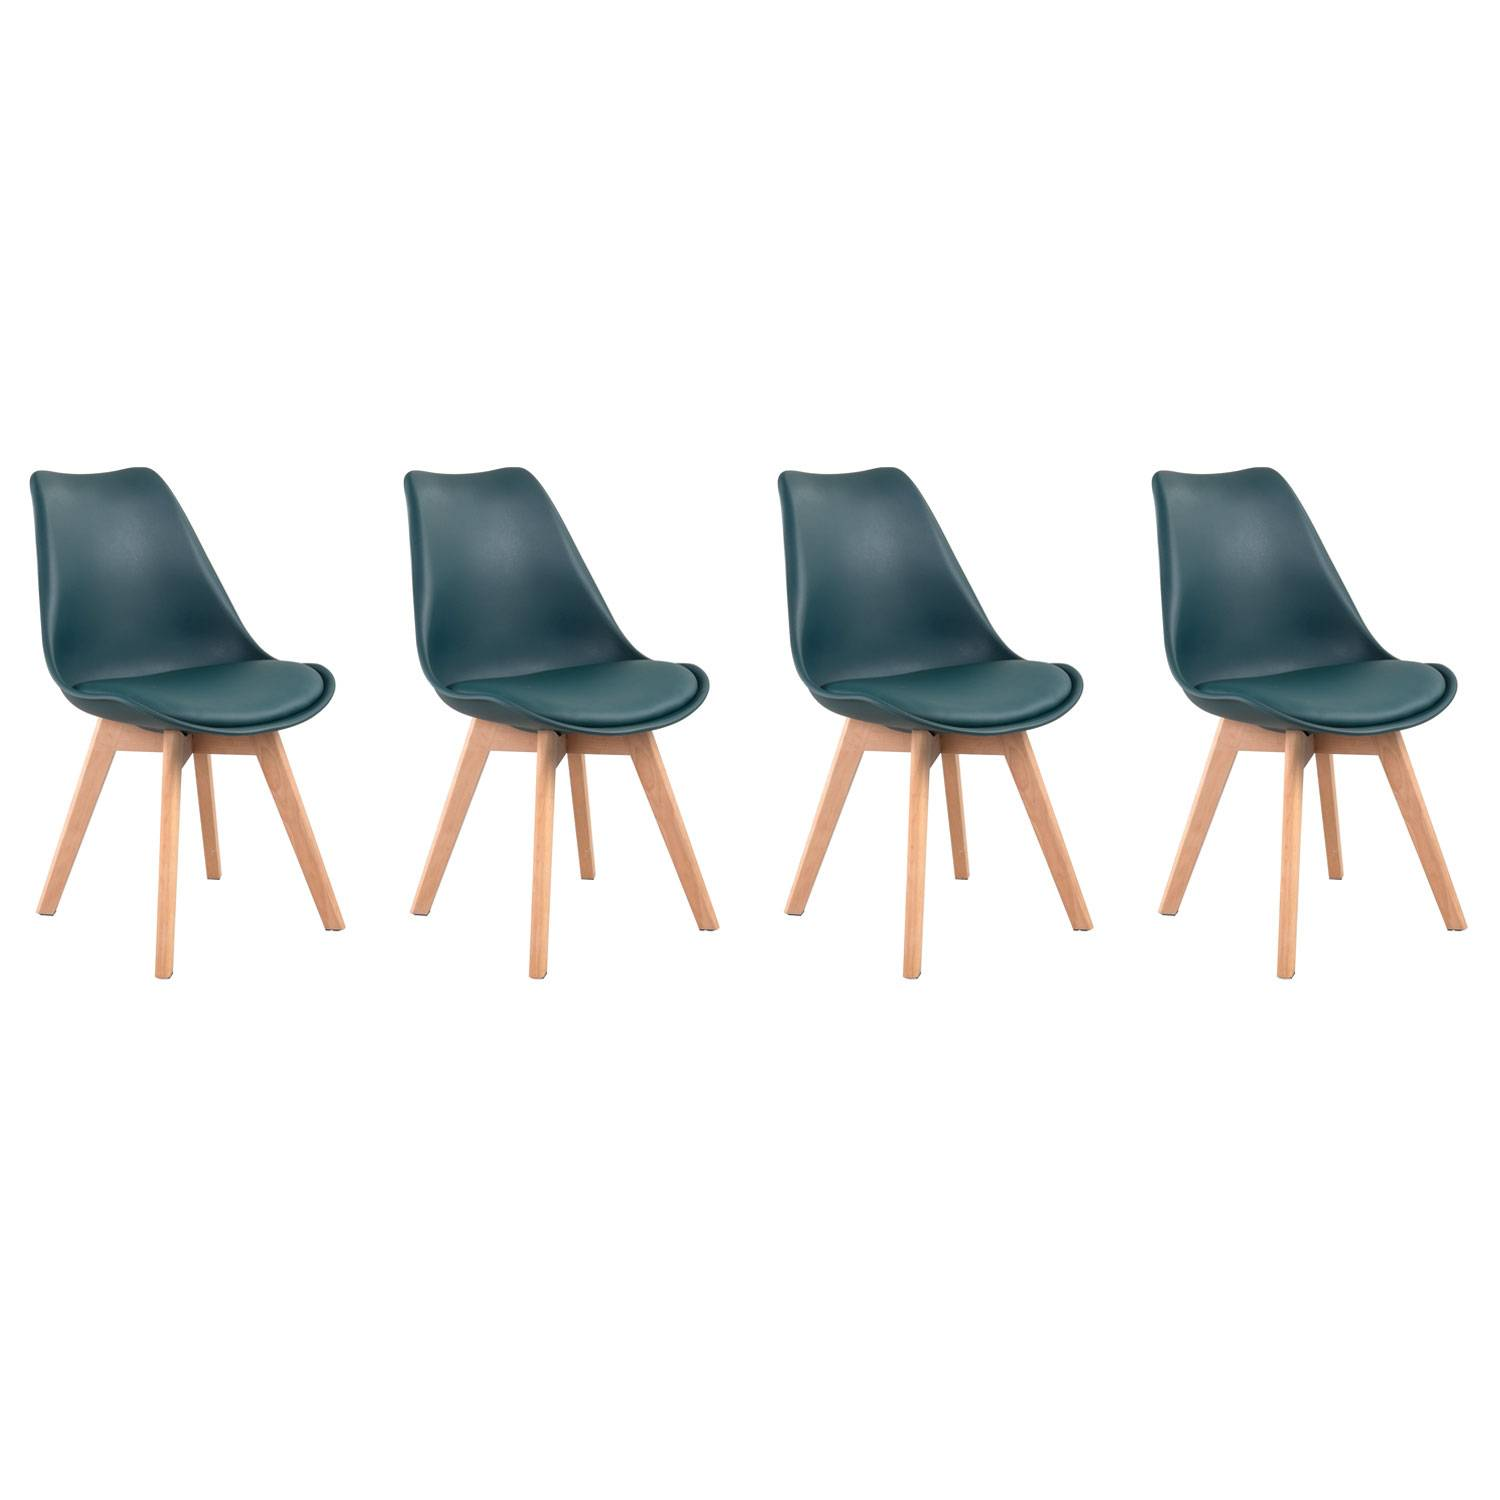 Chaises scandinaves bleues